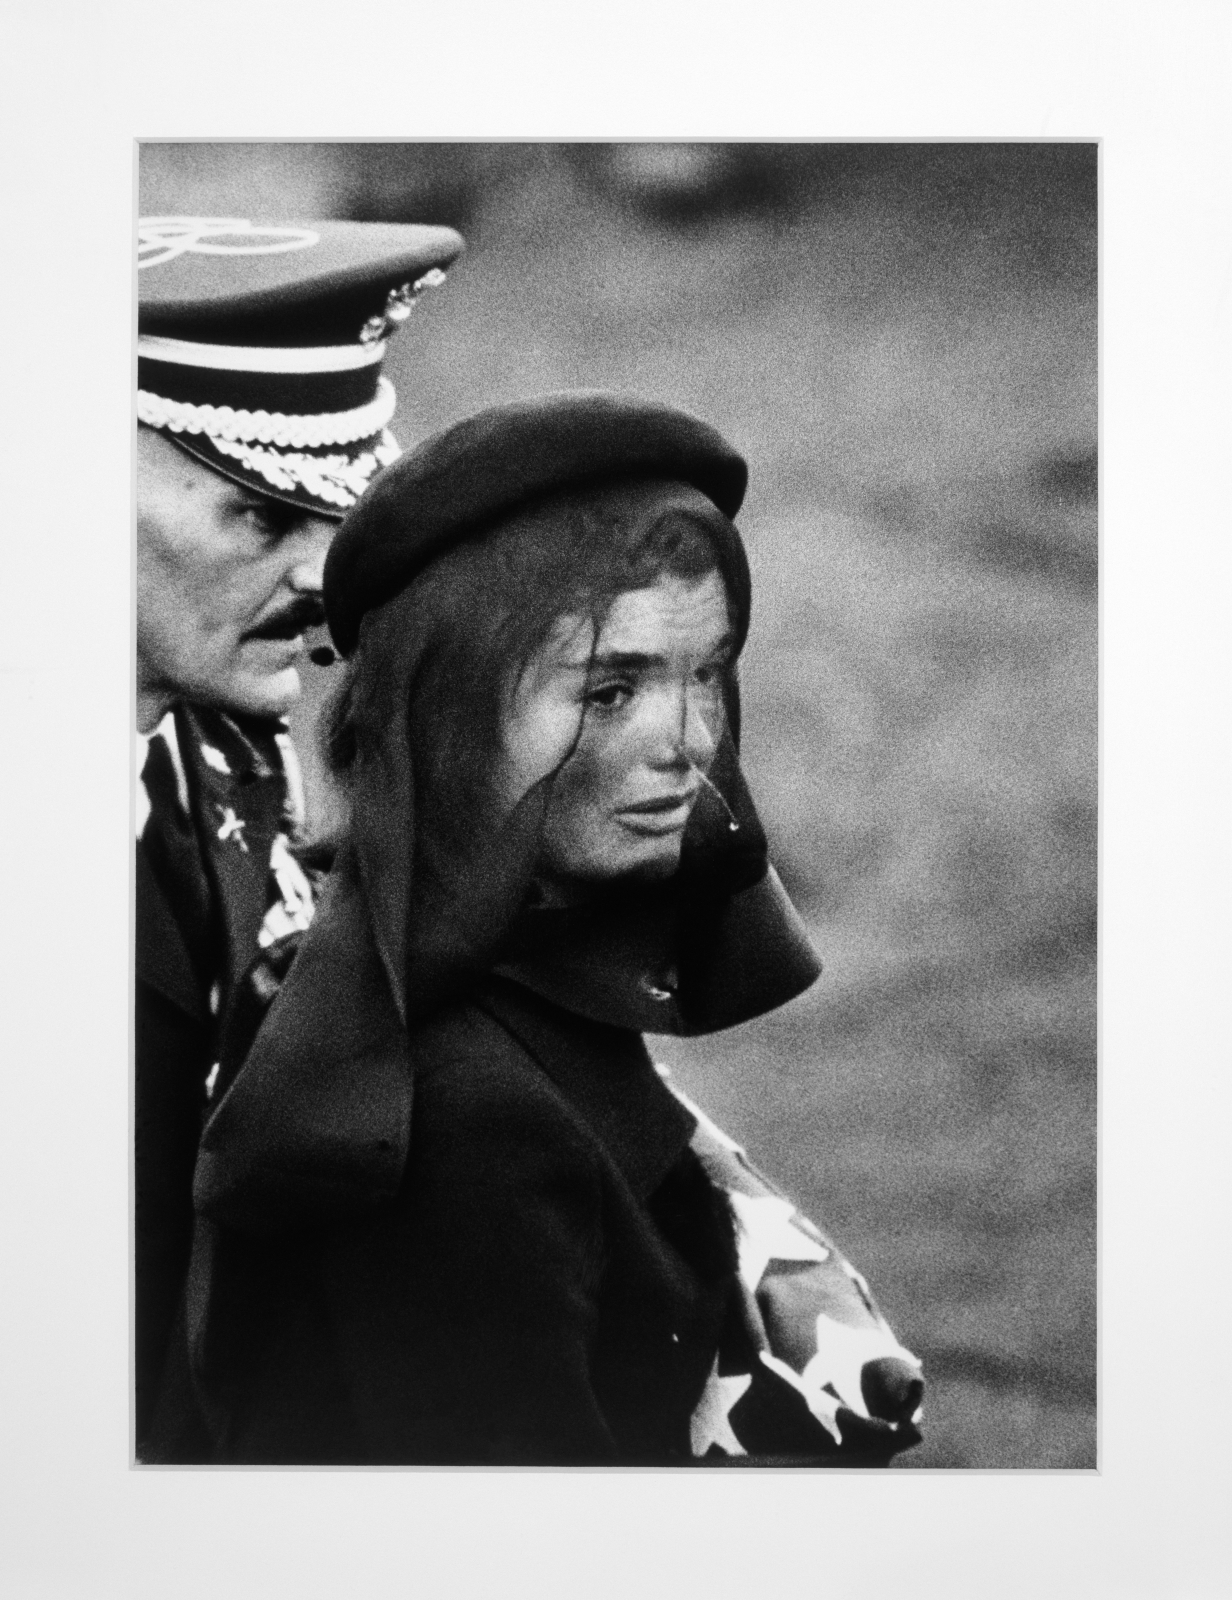 MCA – Collection: Elliott Erwitt, Jackie Kennedy at Funeral